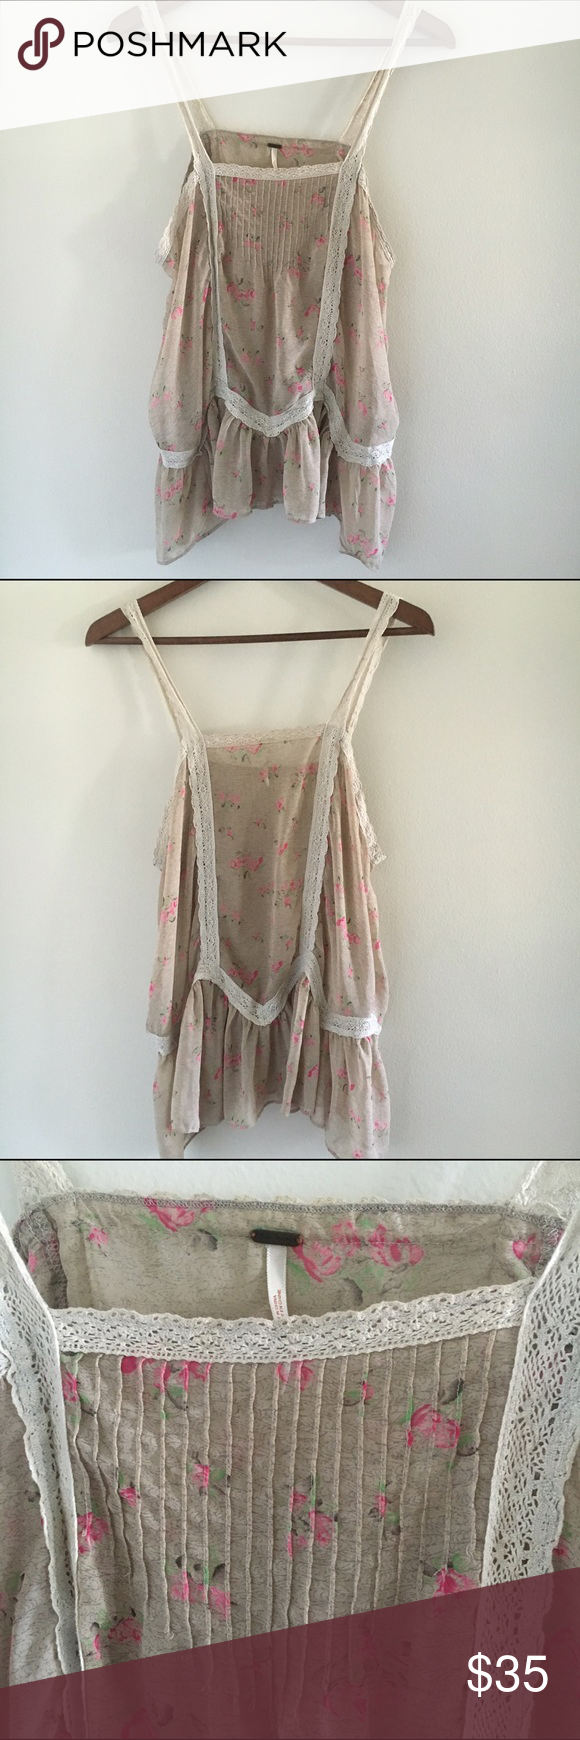 Color printing bu - Final Price Free People Rayon Lace Cami Beautiful Camisole Top By Free People Lace Straps And Details Beige Color With Roses Print